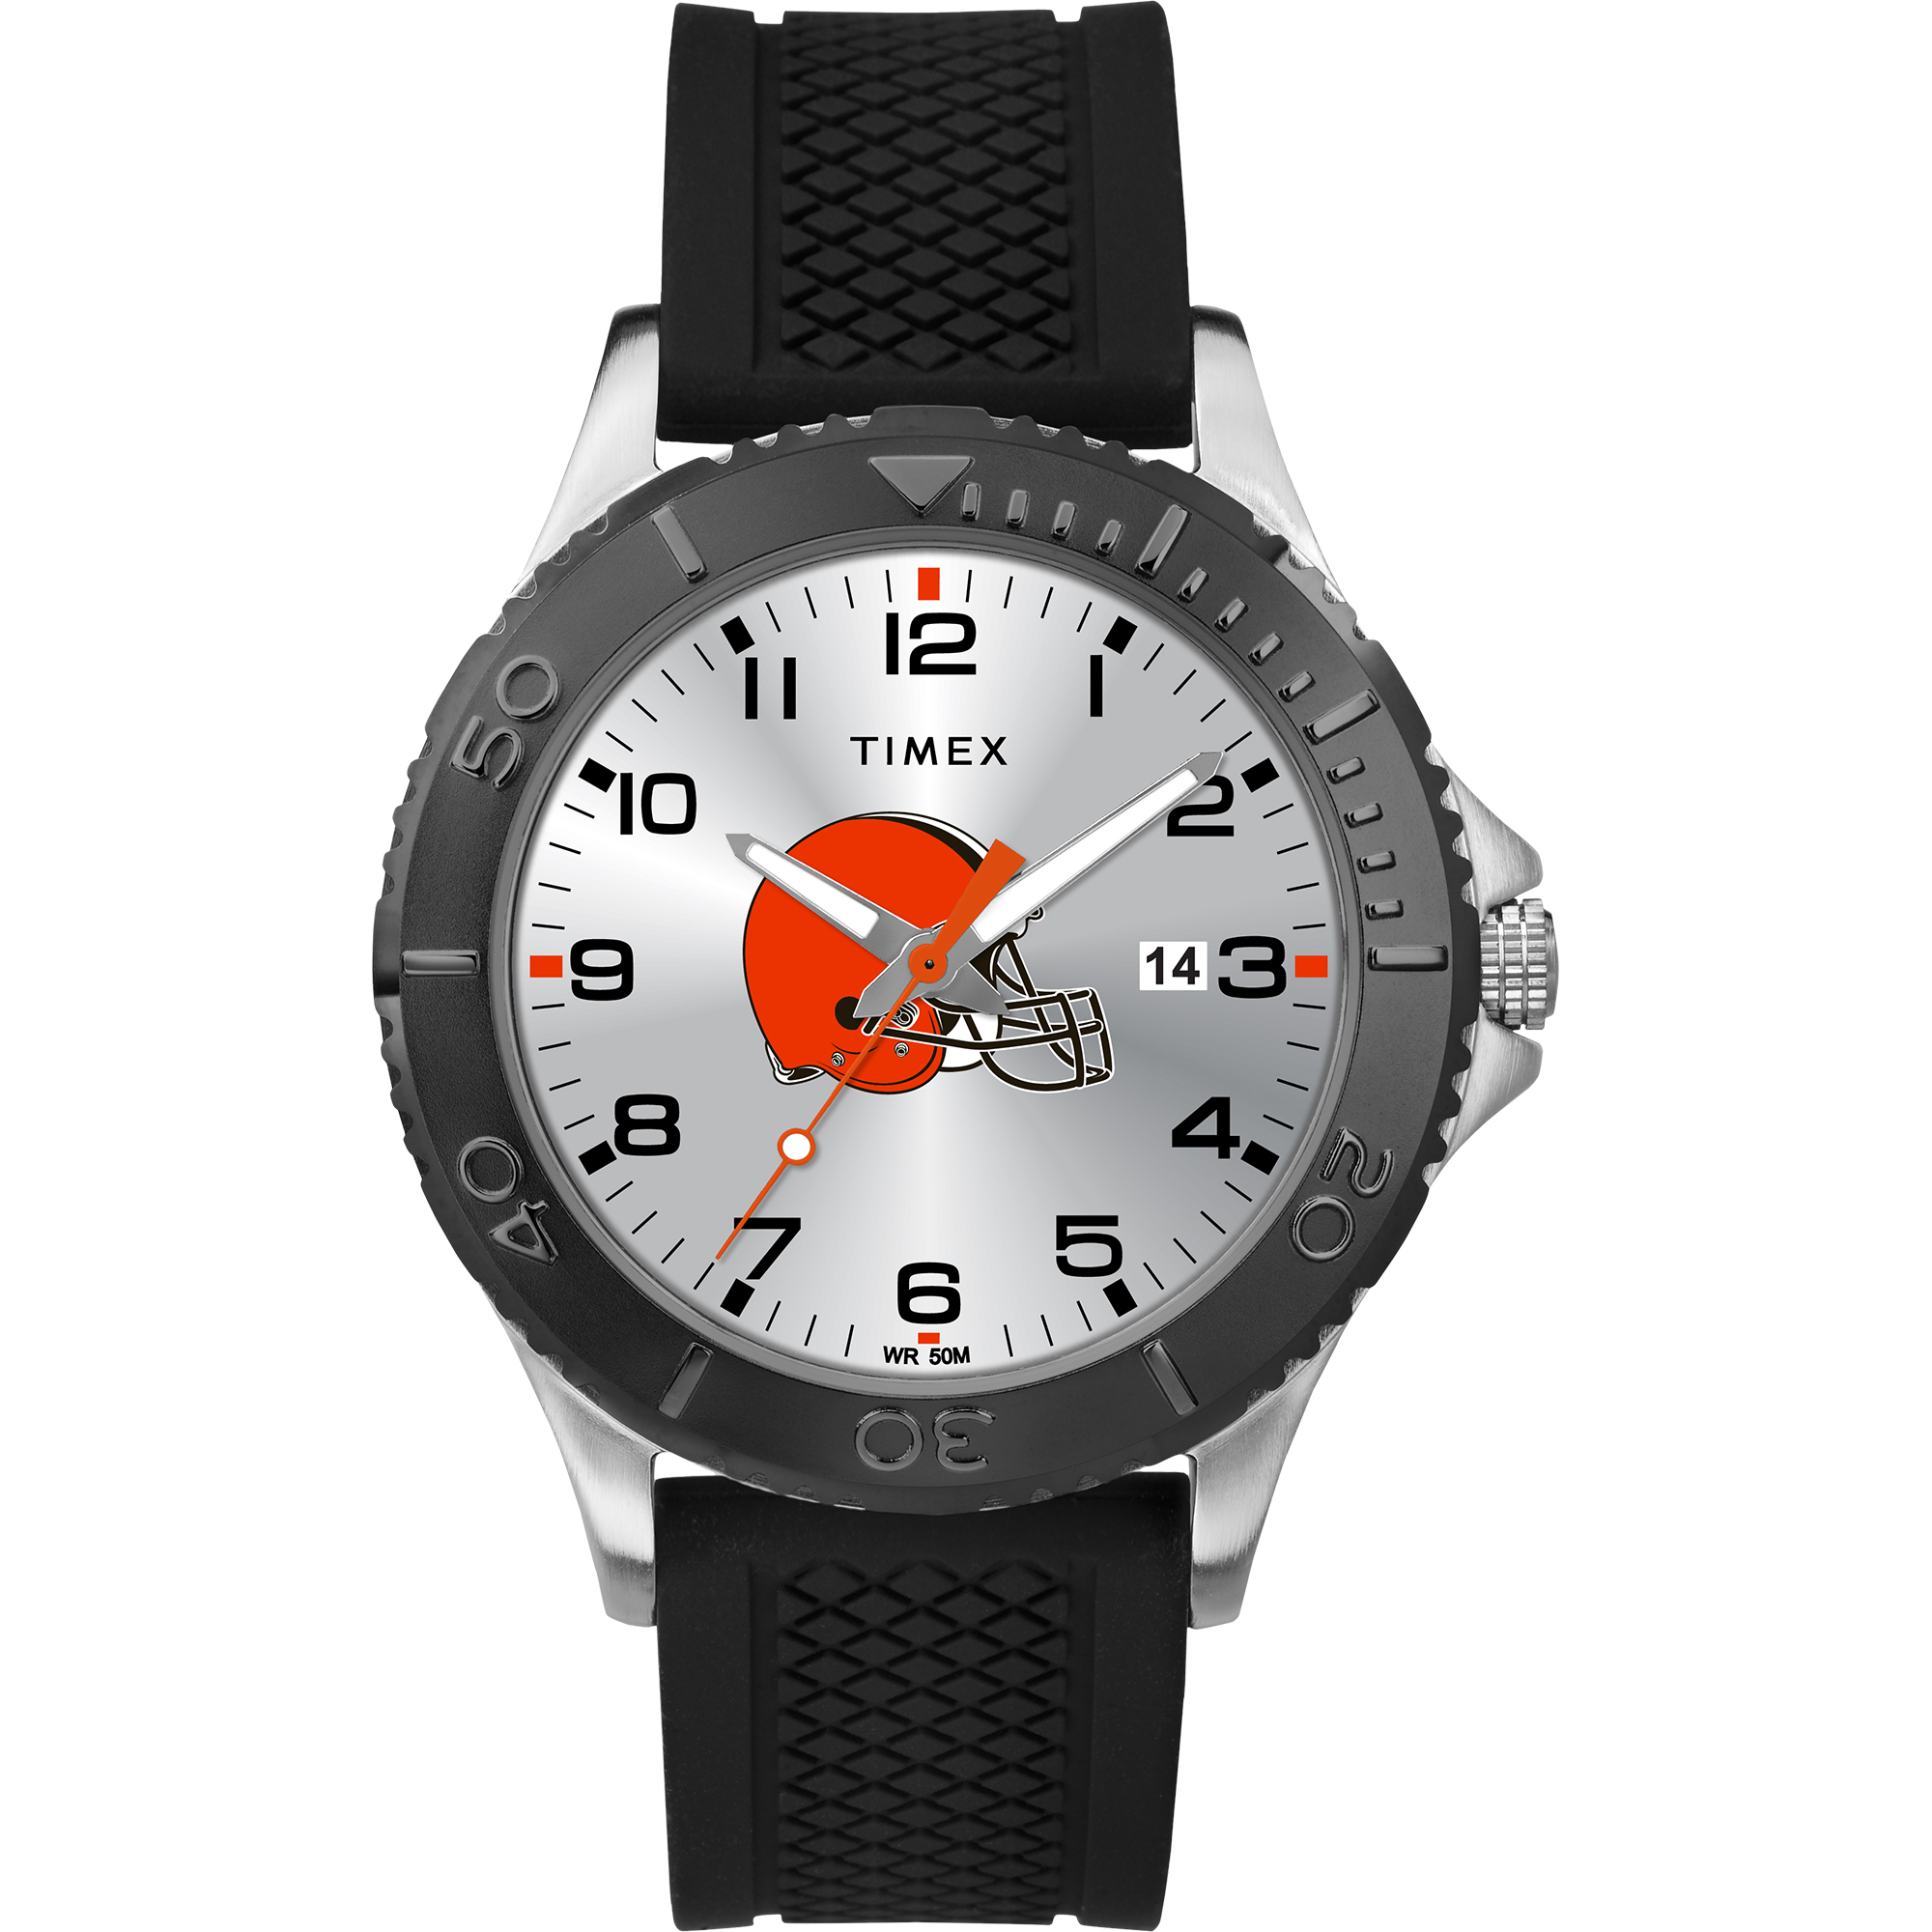 Timex - NFL Tribute Collection Gamer Black Men's Watch, Cleveland Browns